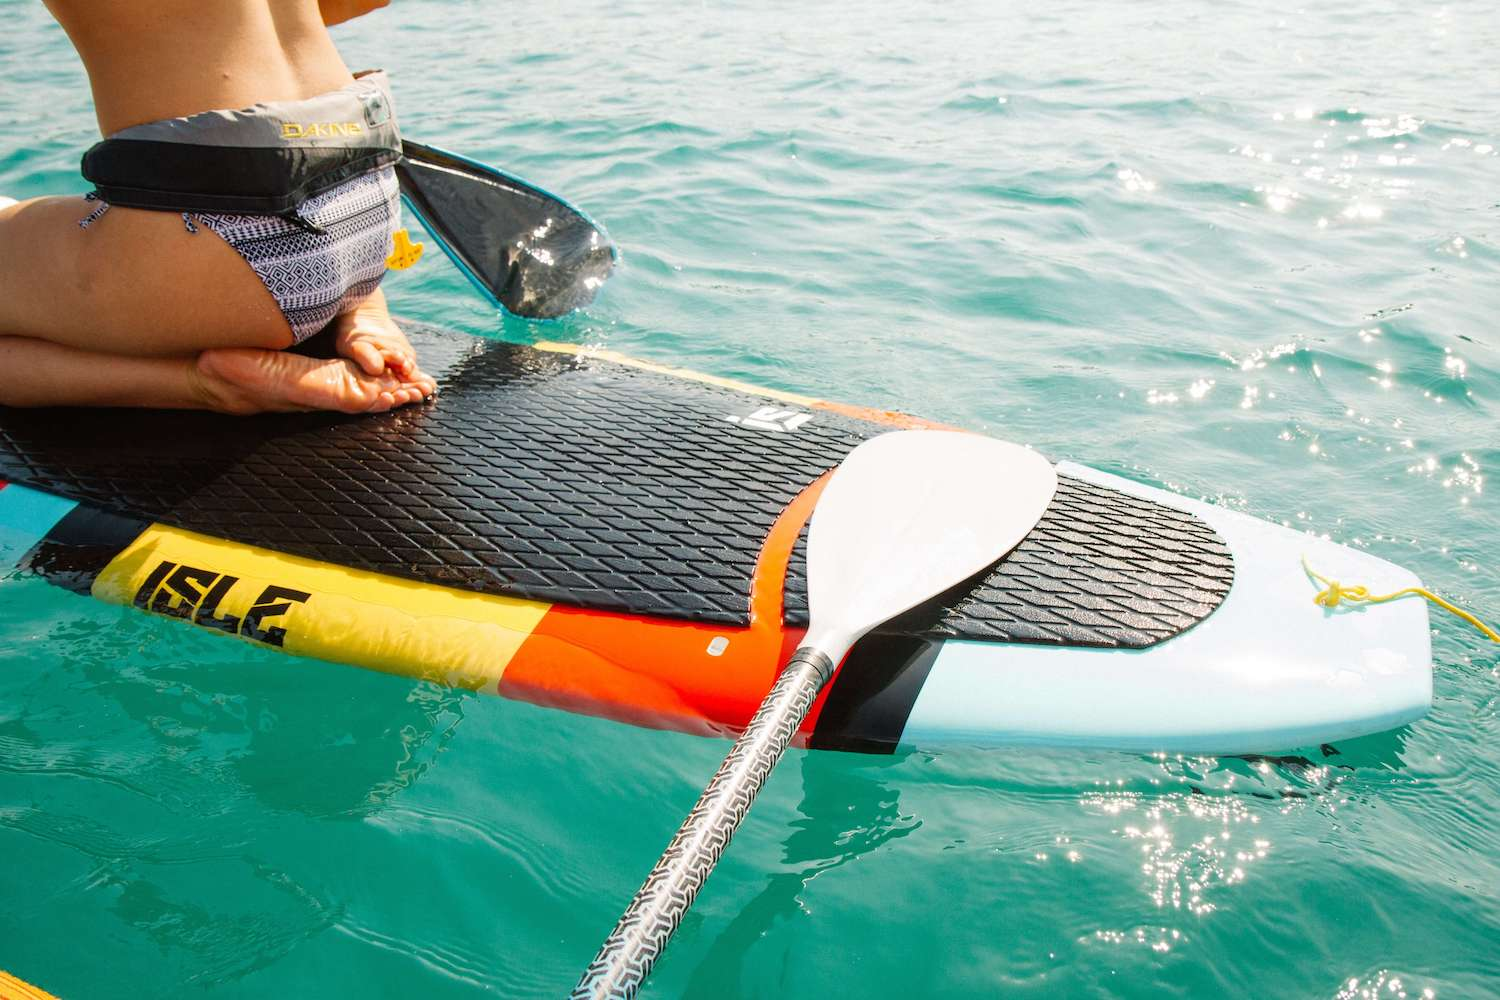 Ride on Retreats - SUP Holidays - Stand Up Paddle.jpg